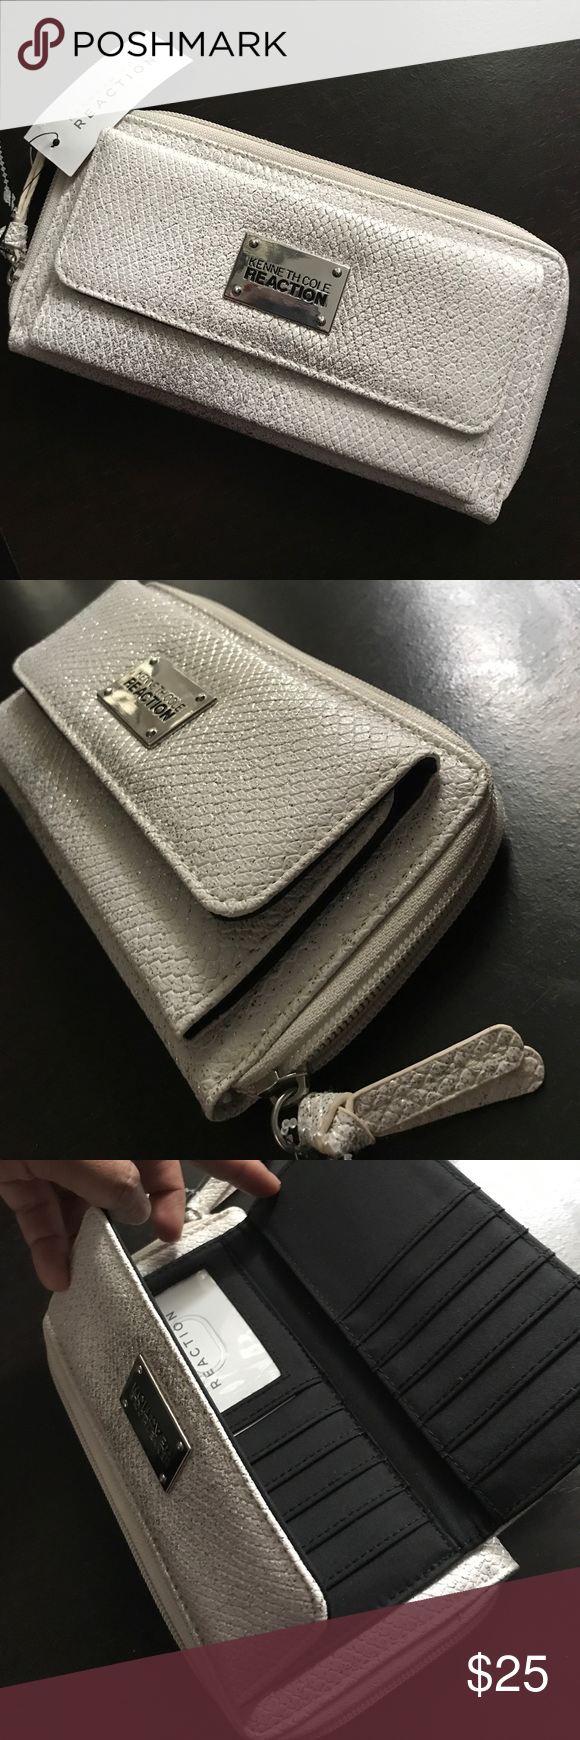 """NWT MSRP $55 Kenneth Cole Organizer Wallet Snake Beautiful shimmering white / silver / white gold shades over snake skin texture! This is like 2 wallets in one because it has a cards & bills pocket and extra room on the zippered compartment for extra cards, bills, etc. Fits your phone too! Measurements 9""""  x  4.5"""" x 2"""" New with tags. MSRP $50 plus tax Kenneth Cole Bags Wallets"""